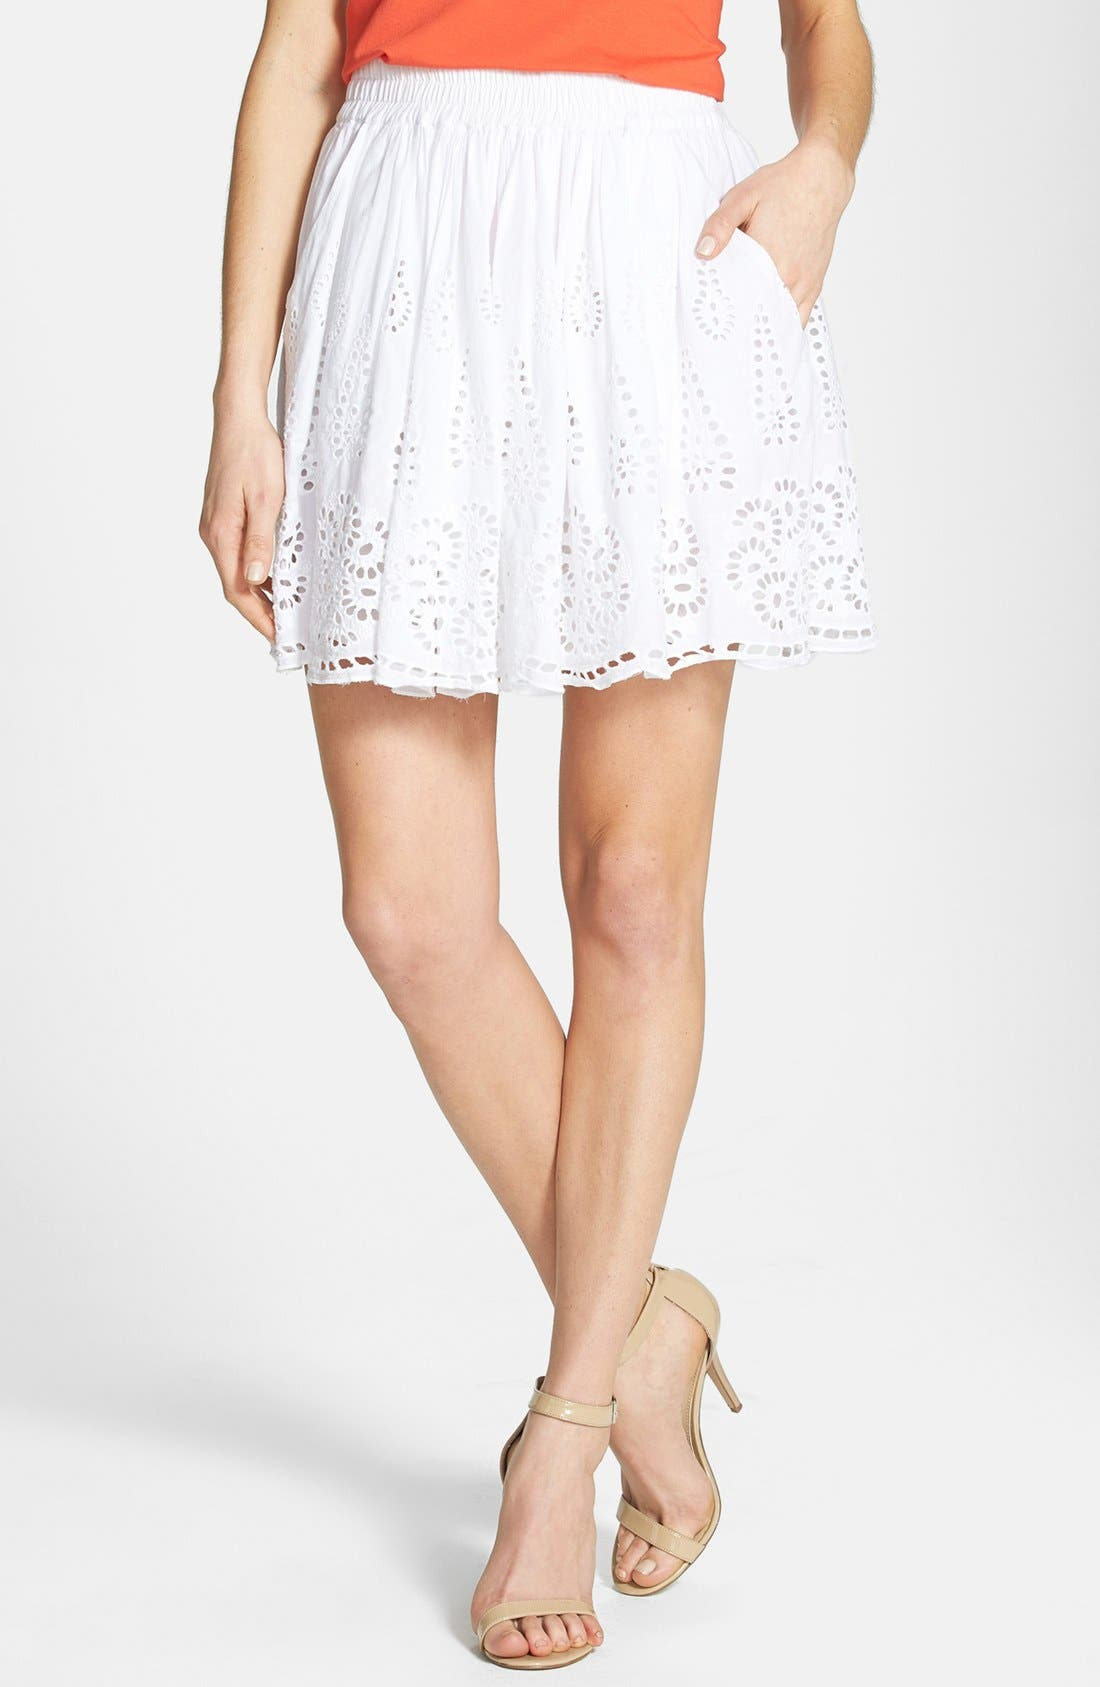 Alternate Image 1 Selected - Two by Vince Camuto Eyelet Embroidered Cotton Skirt